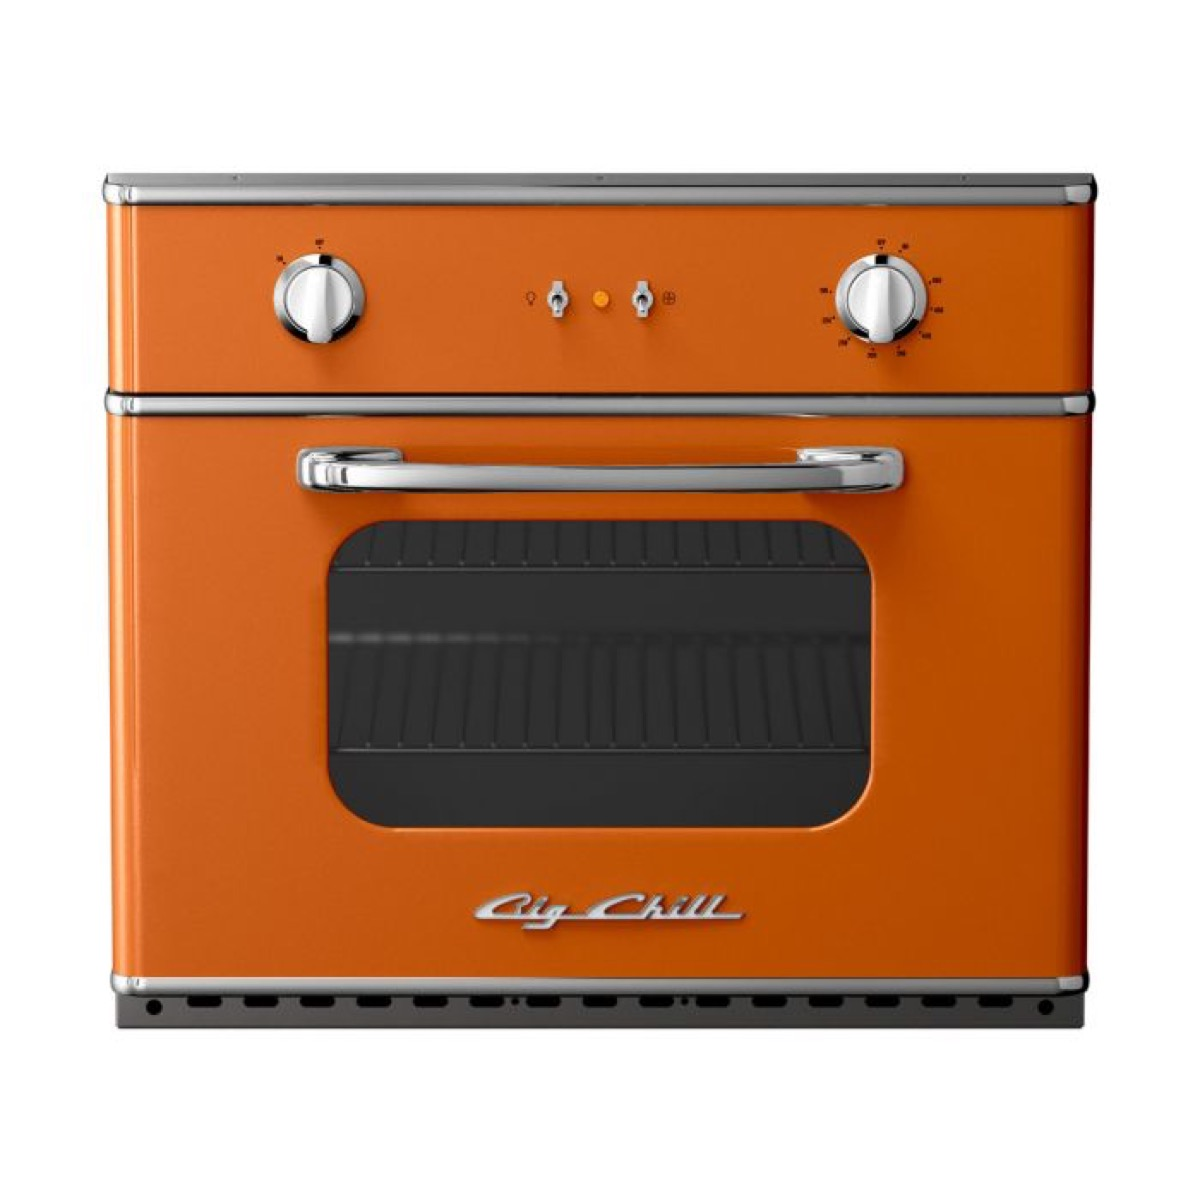 big chill electric wall oven vintage home features